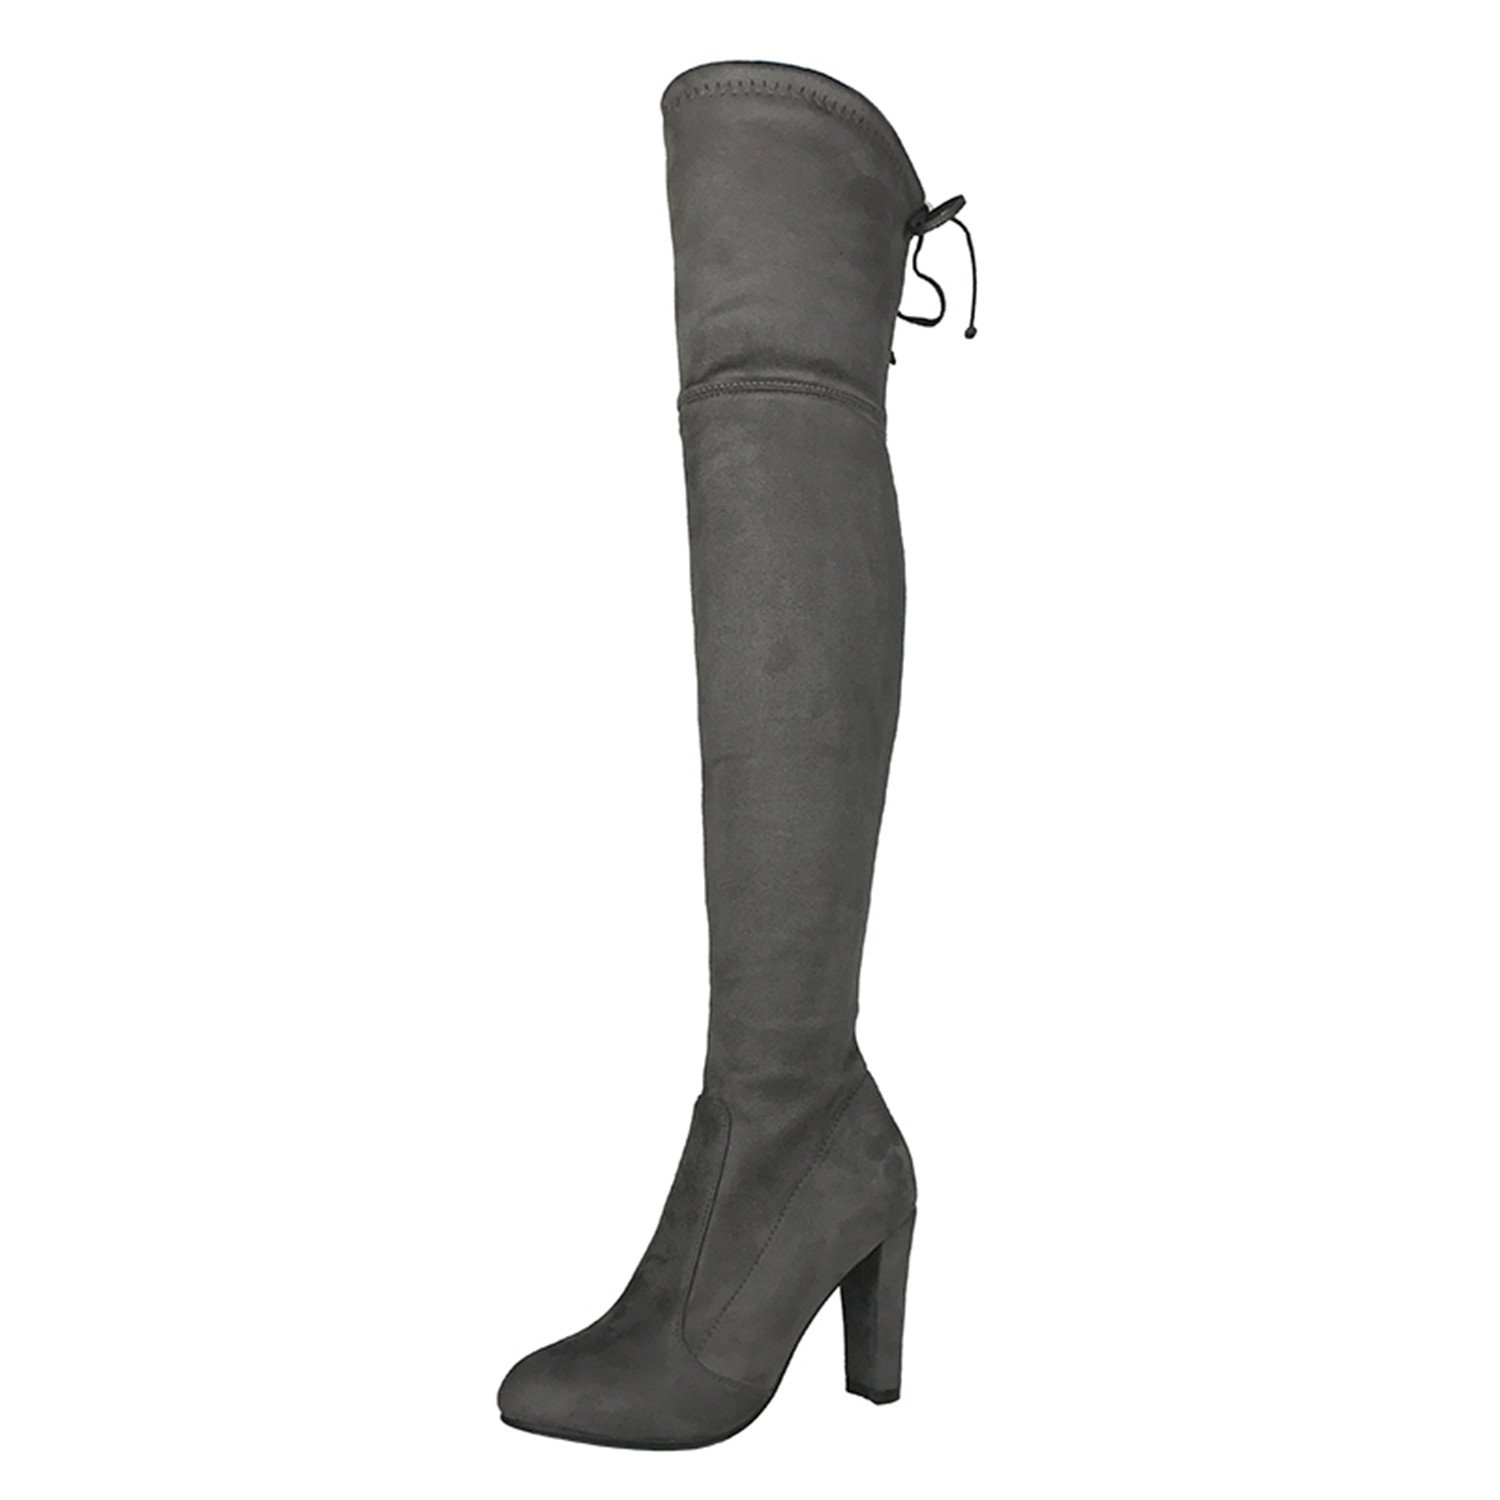 Dormery Top Sexy Faux Suede Women Thigh High Boots Stretch Slim Sexy Top Fashion Over The Knee Boots Female Shoes High Heels Black Gray Wine Nude B078R2KY2Y Boots 620fbf